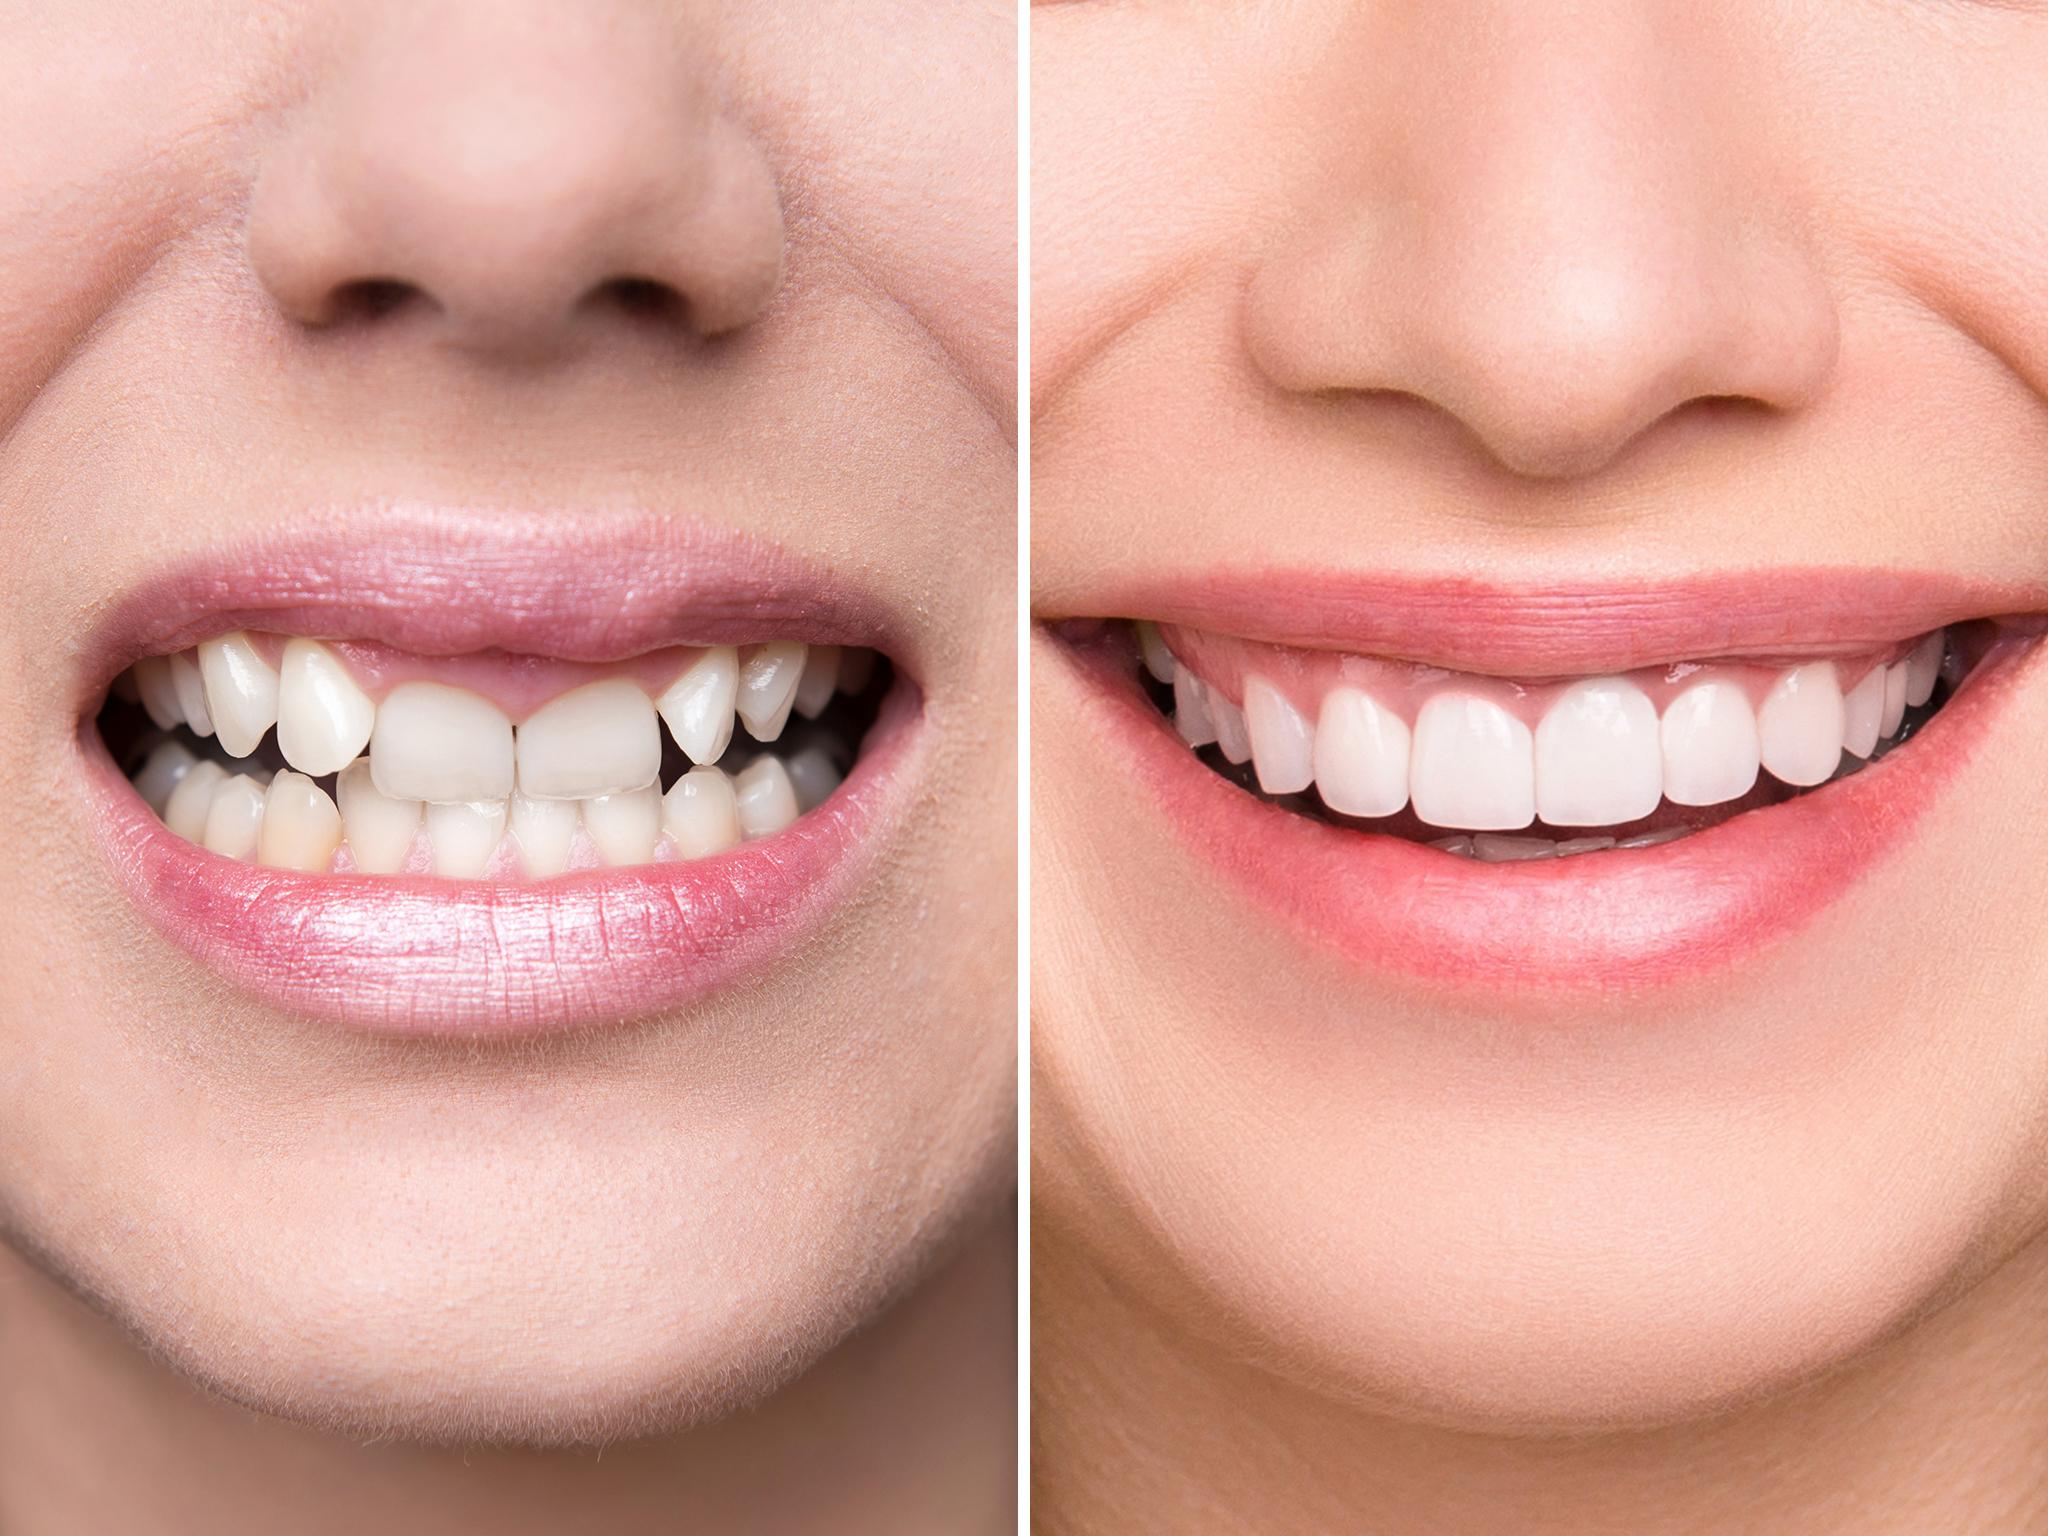 The Dentistry Company Causing Smiles To Turn Into Frowns The Independent The Independent